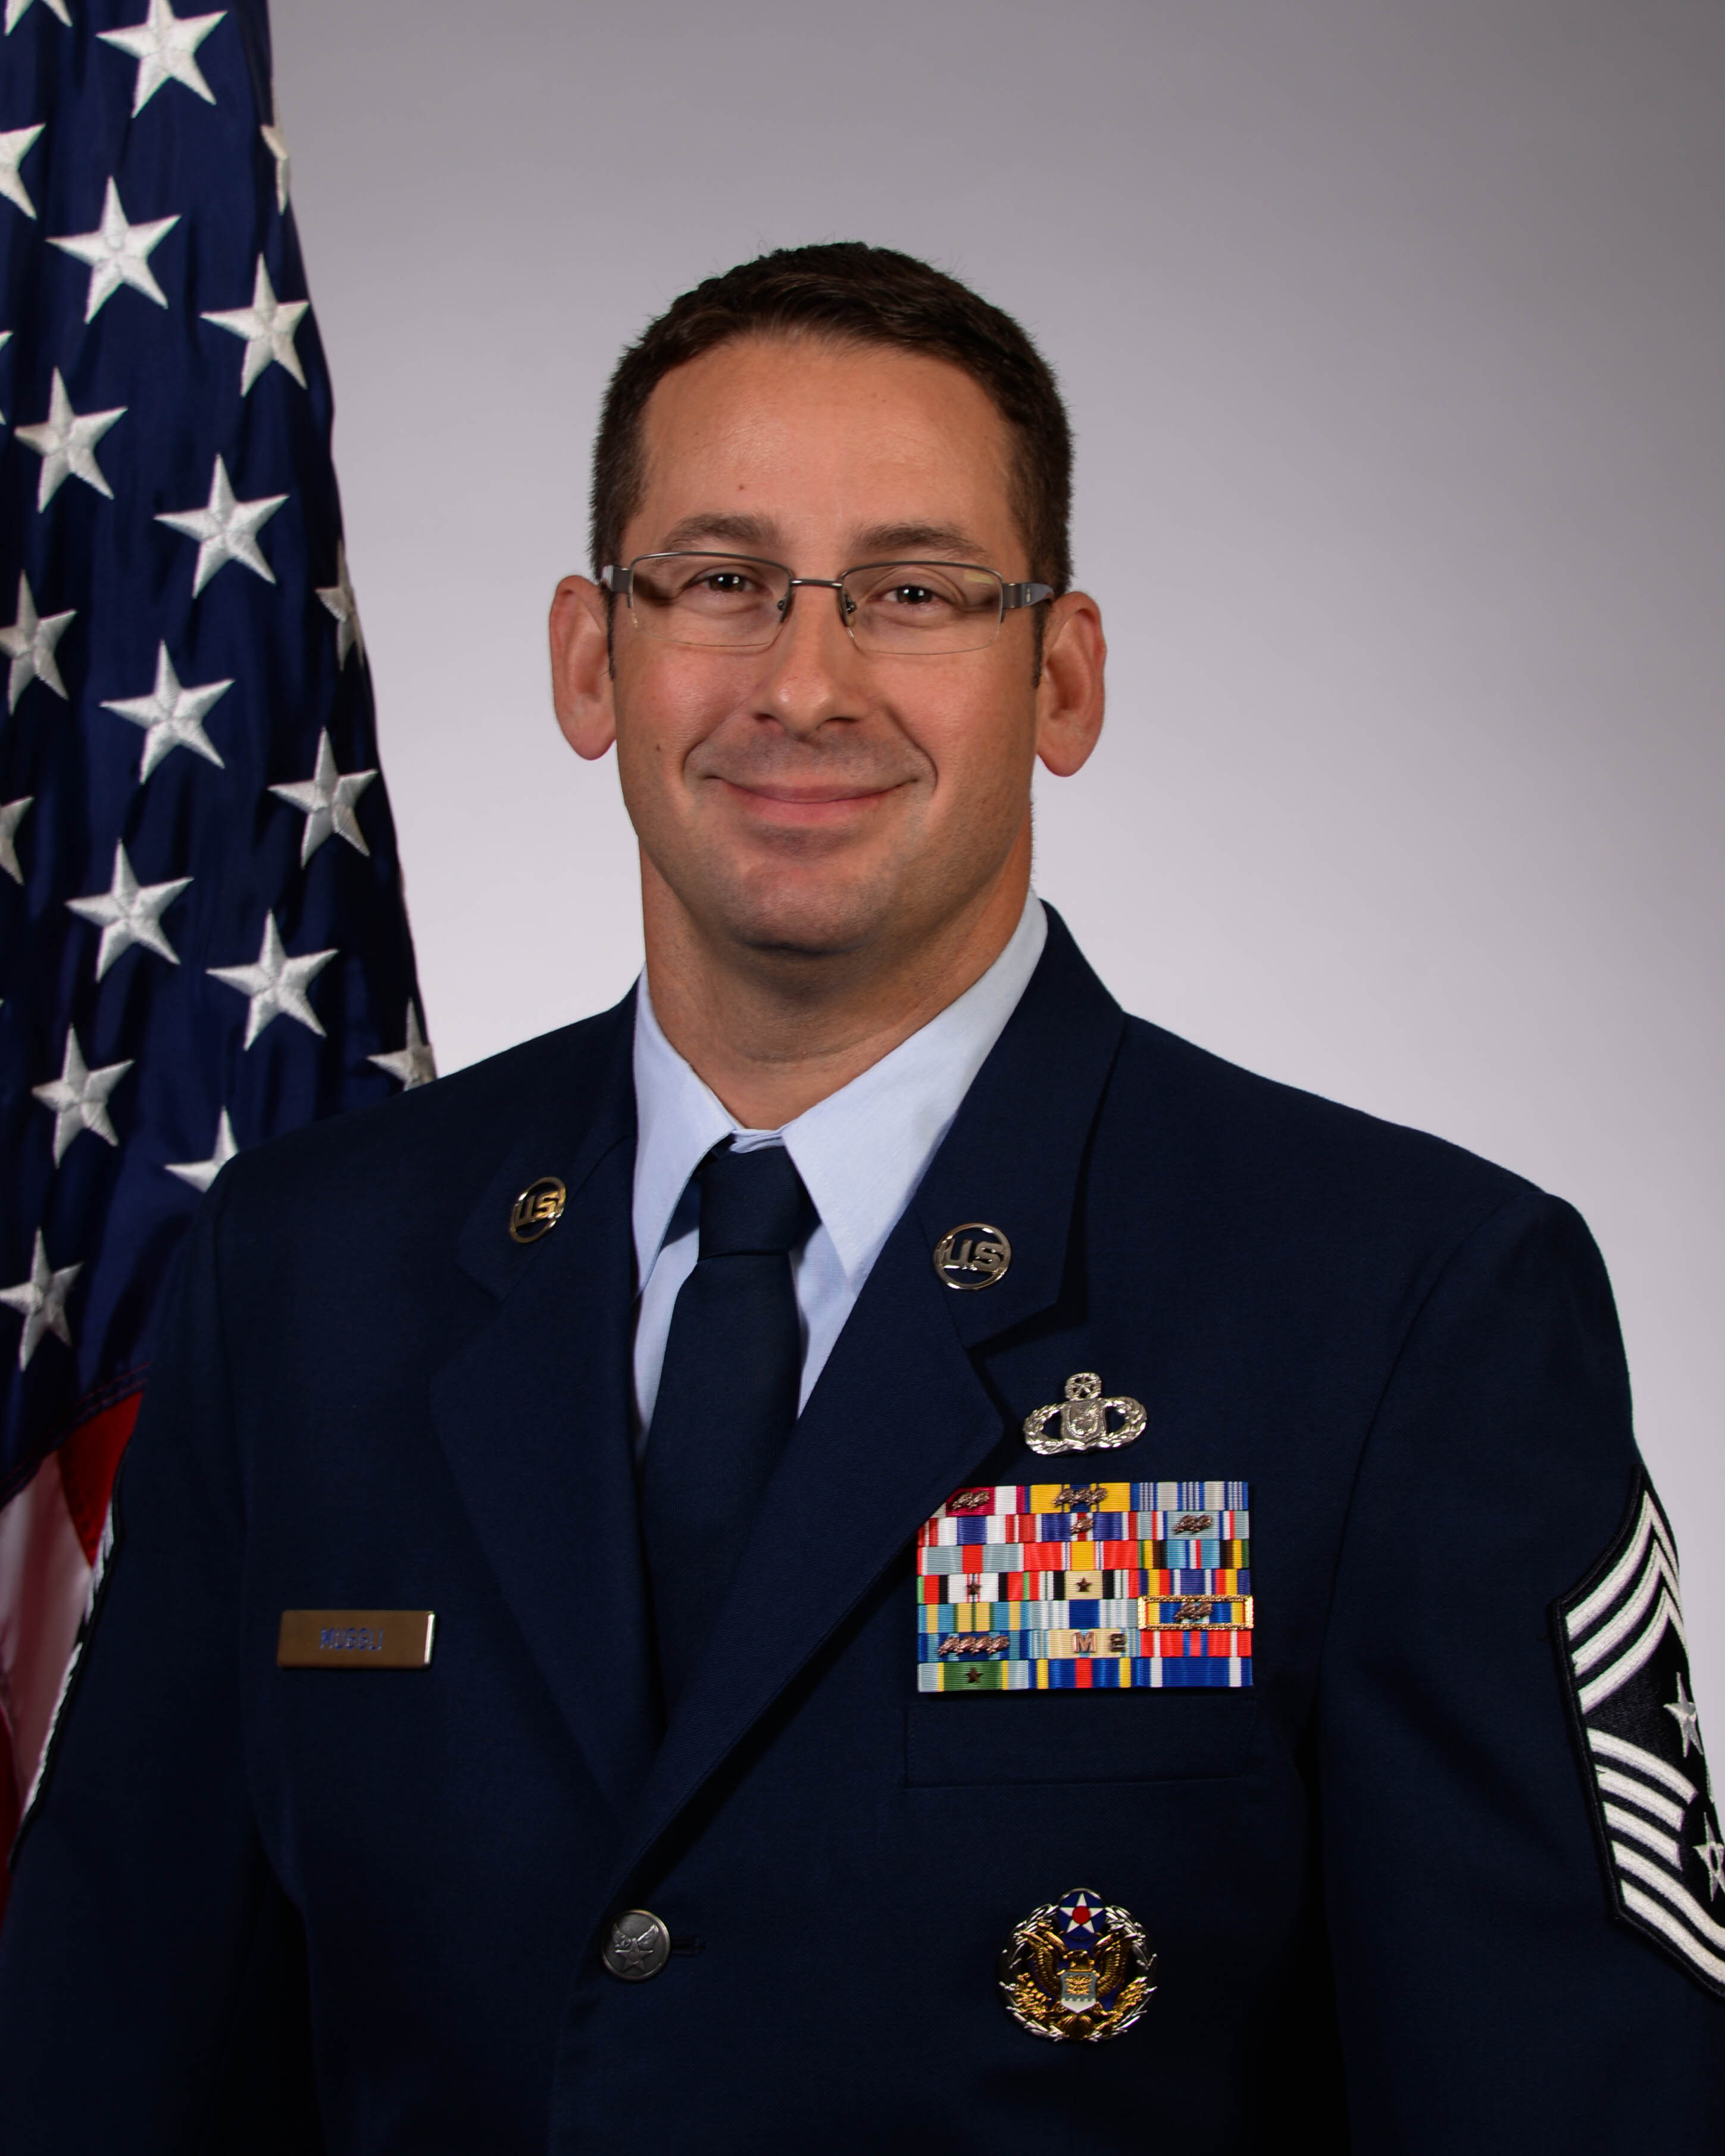 Chief Master Sgt. Paul Muggli